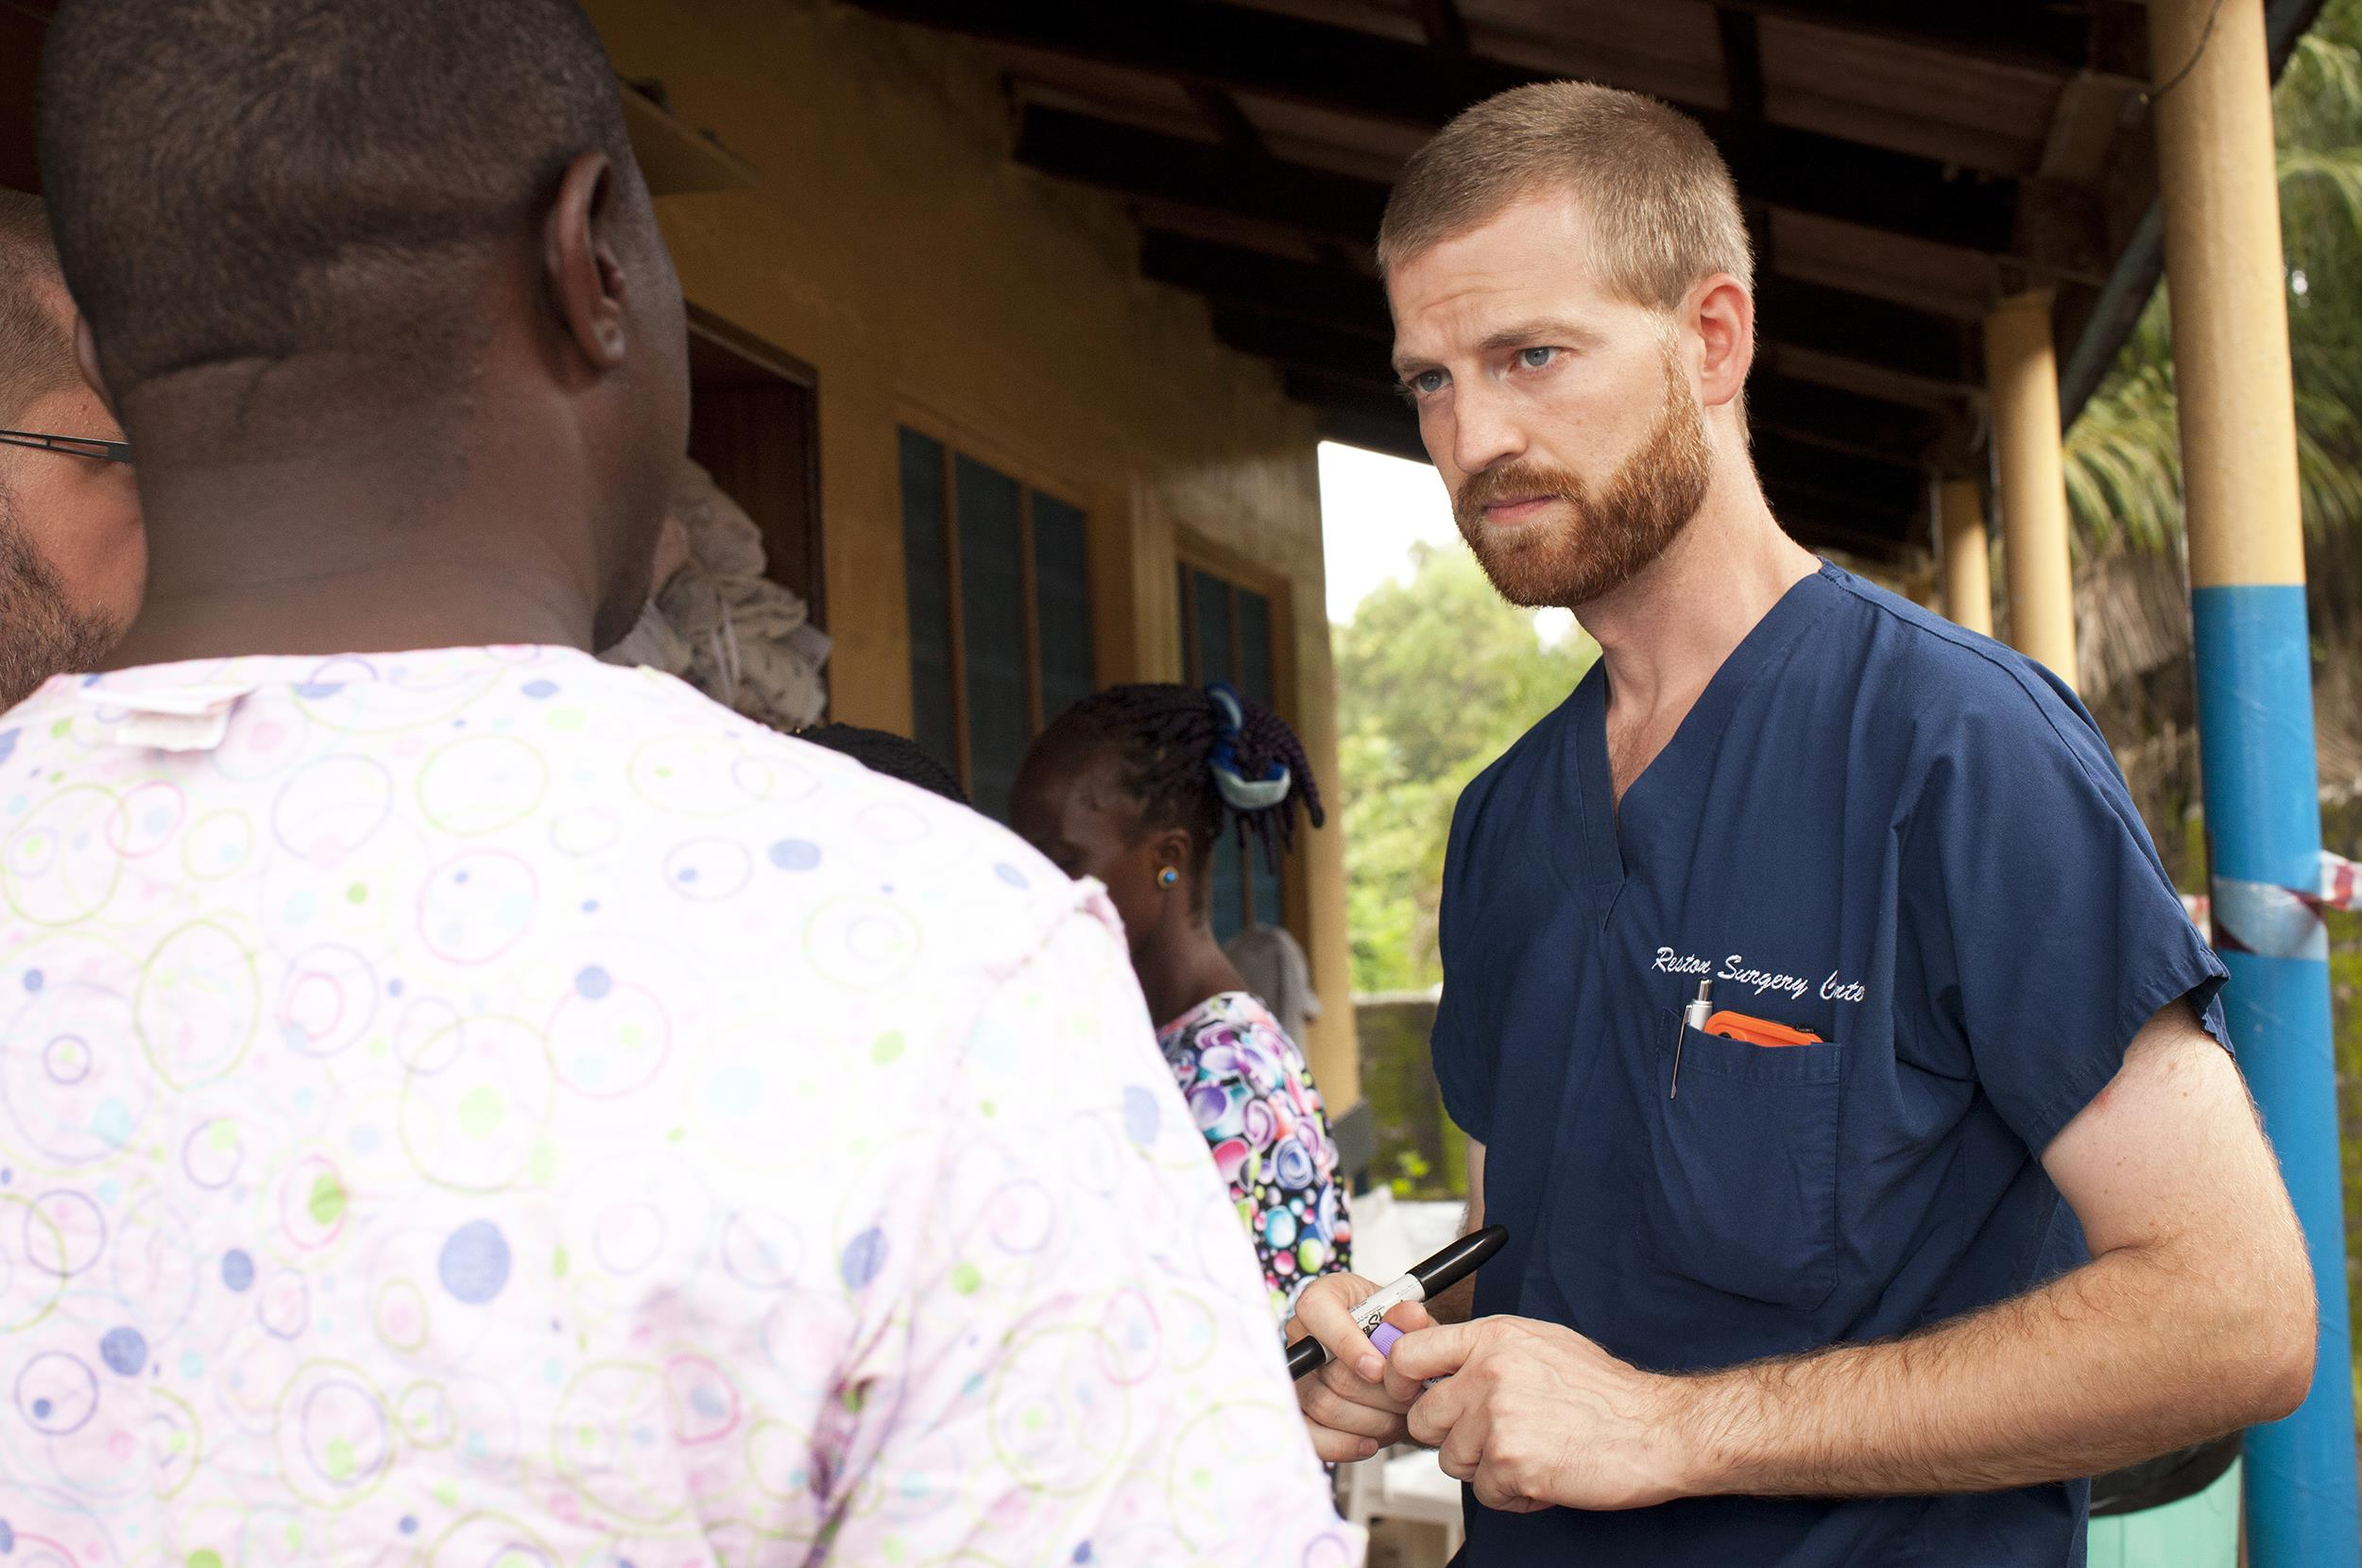 Image: Dr. Keny Brantly, the American doctor who contracted Ebola, in Liberia.